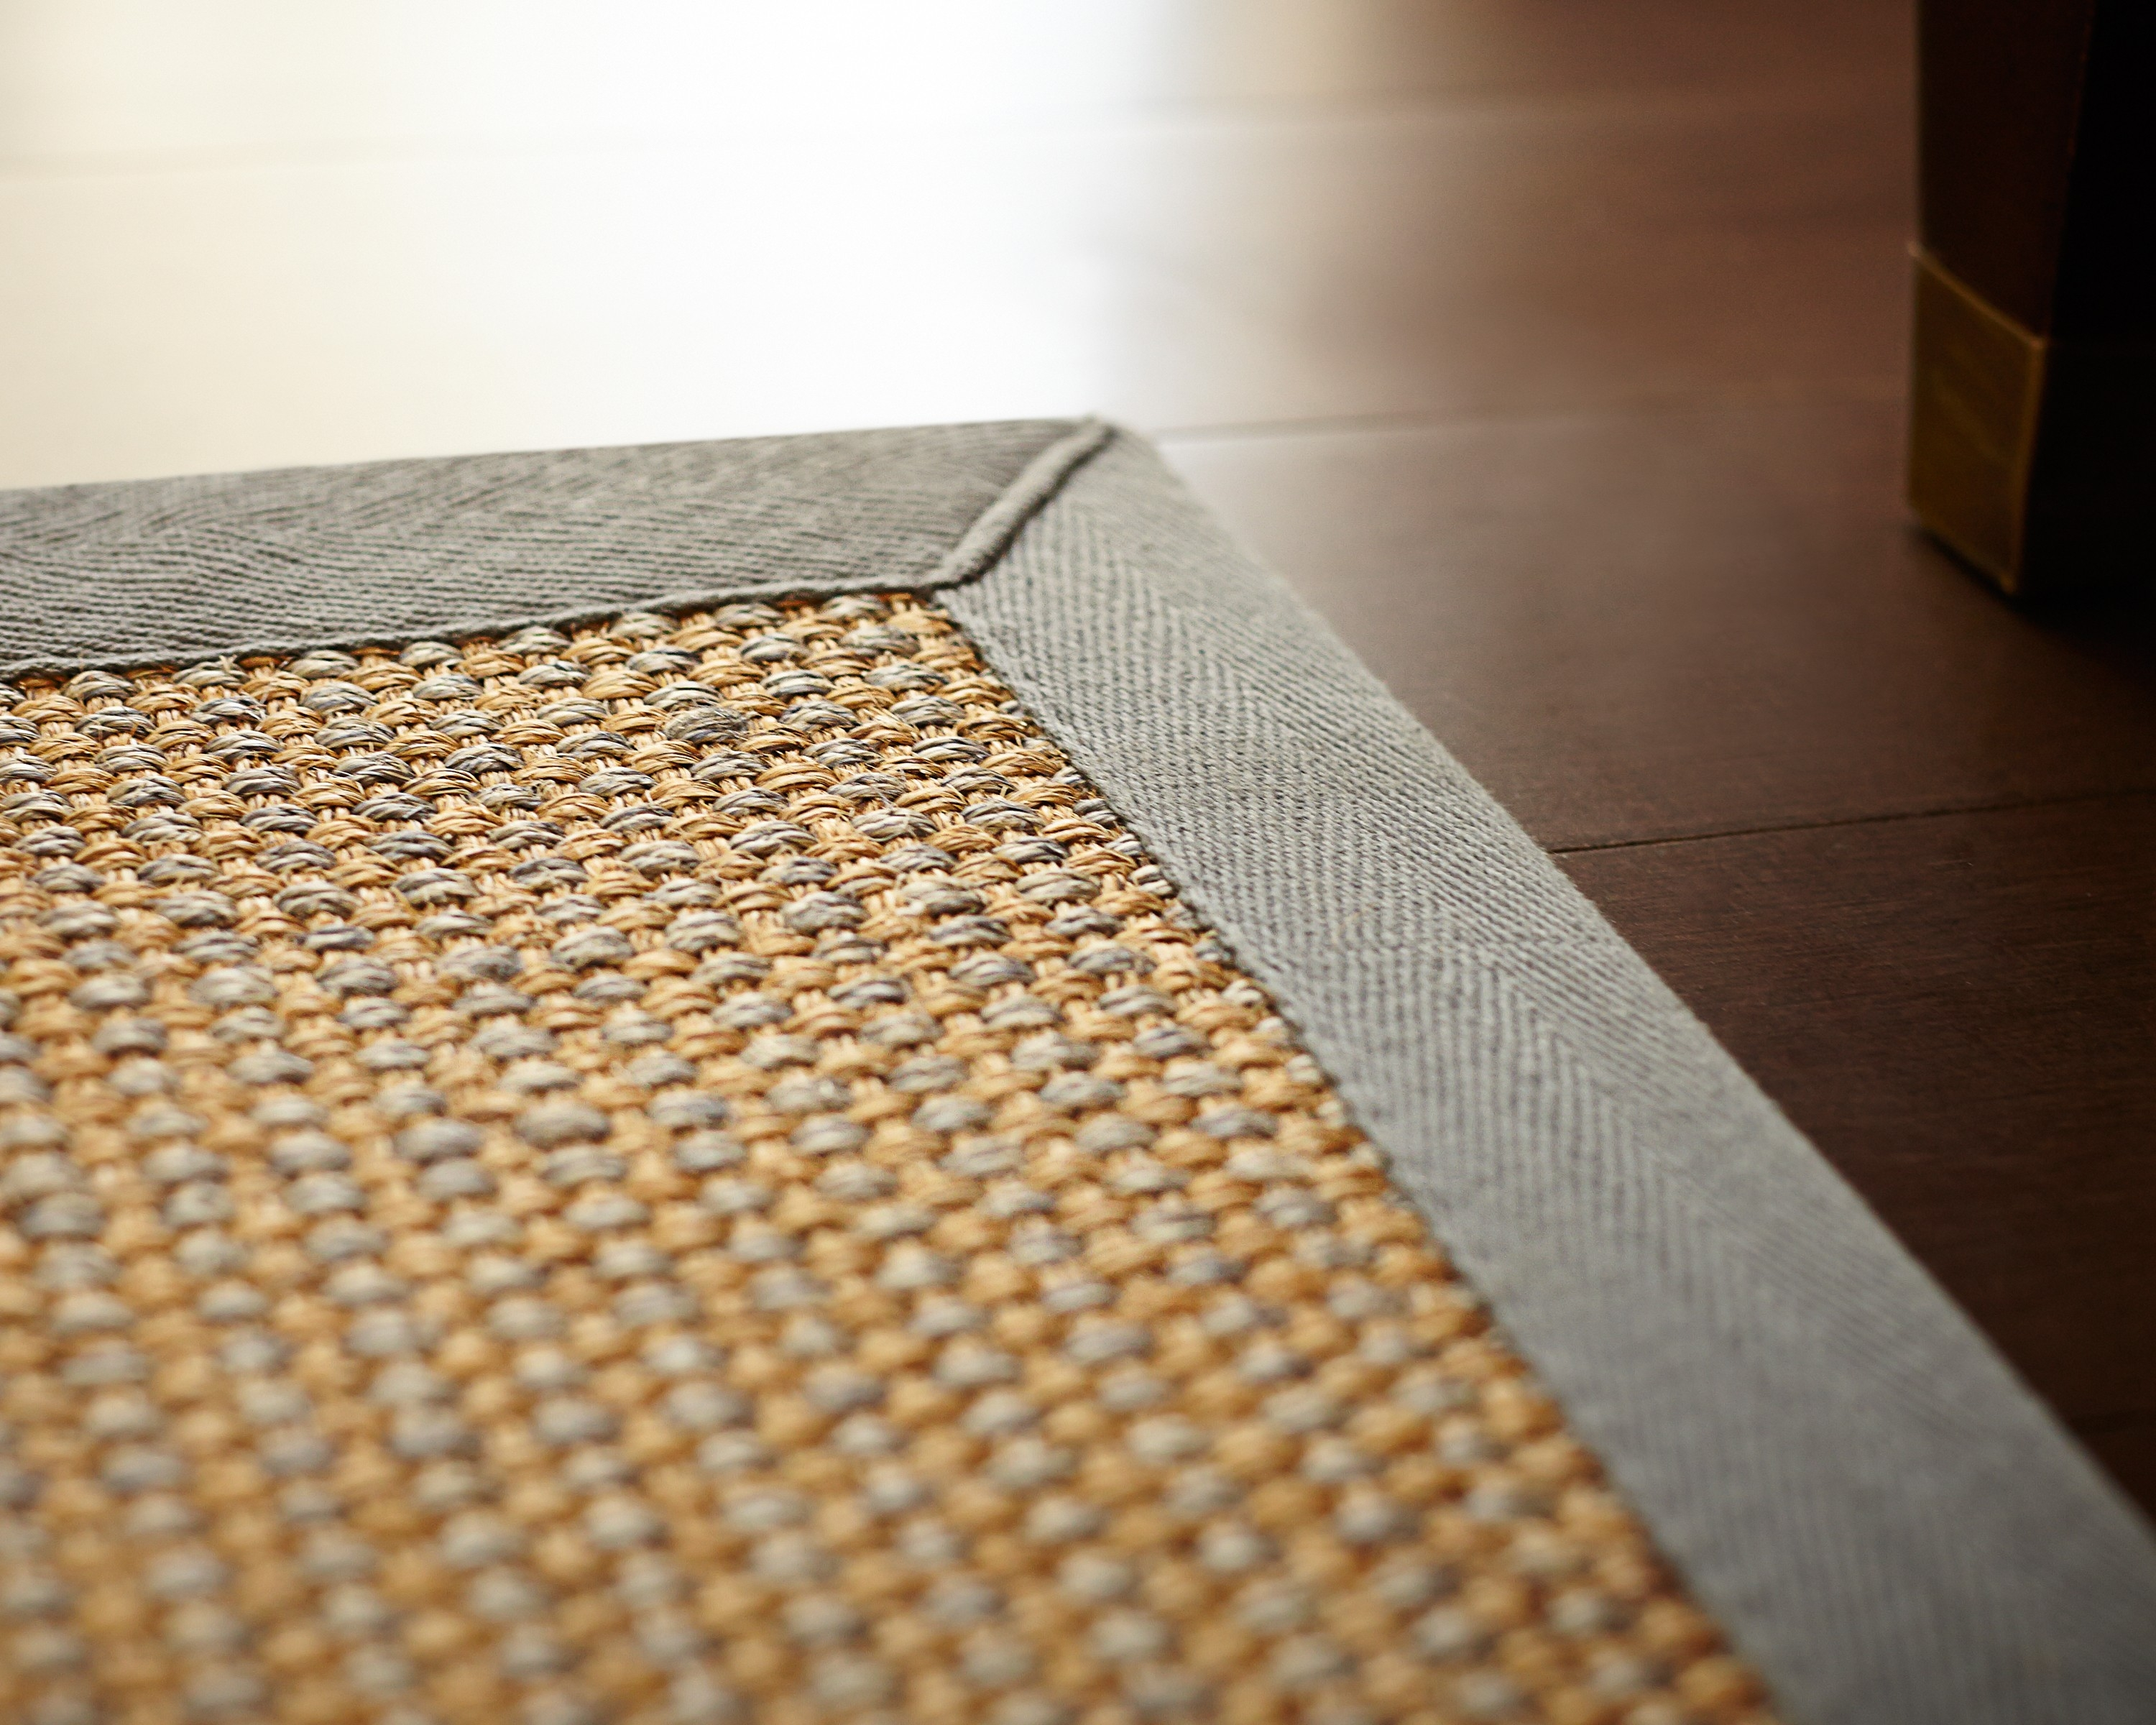 Rugs Dubai Sisal Shaggy Rugs In Dubai Dubai Furniture Regarding Customized Rugs (Image 15 of 15)